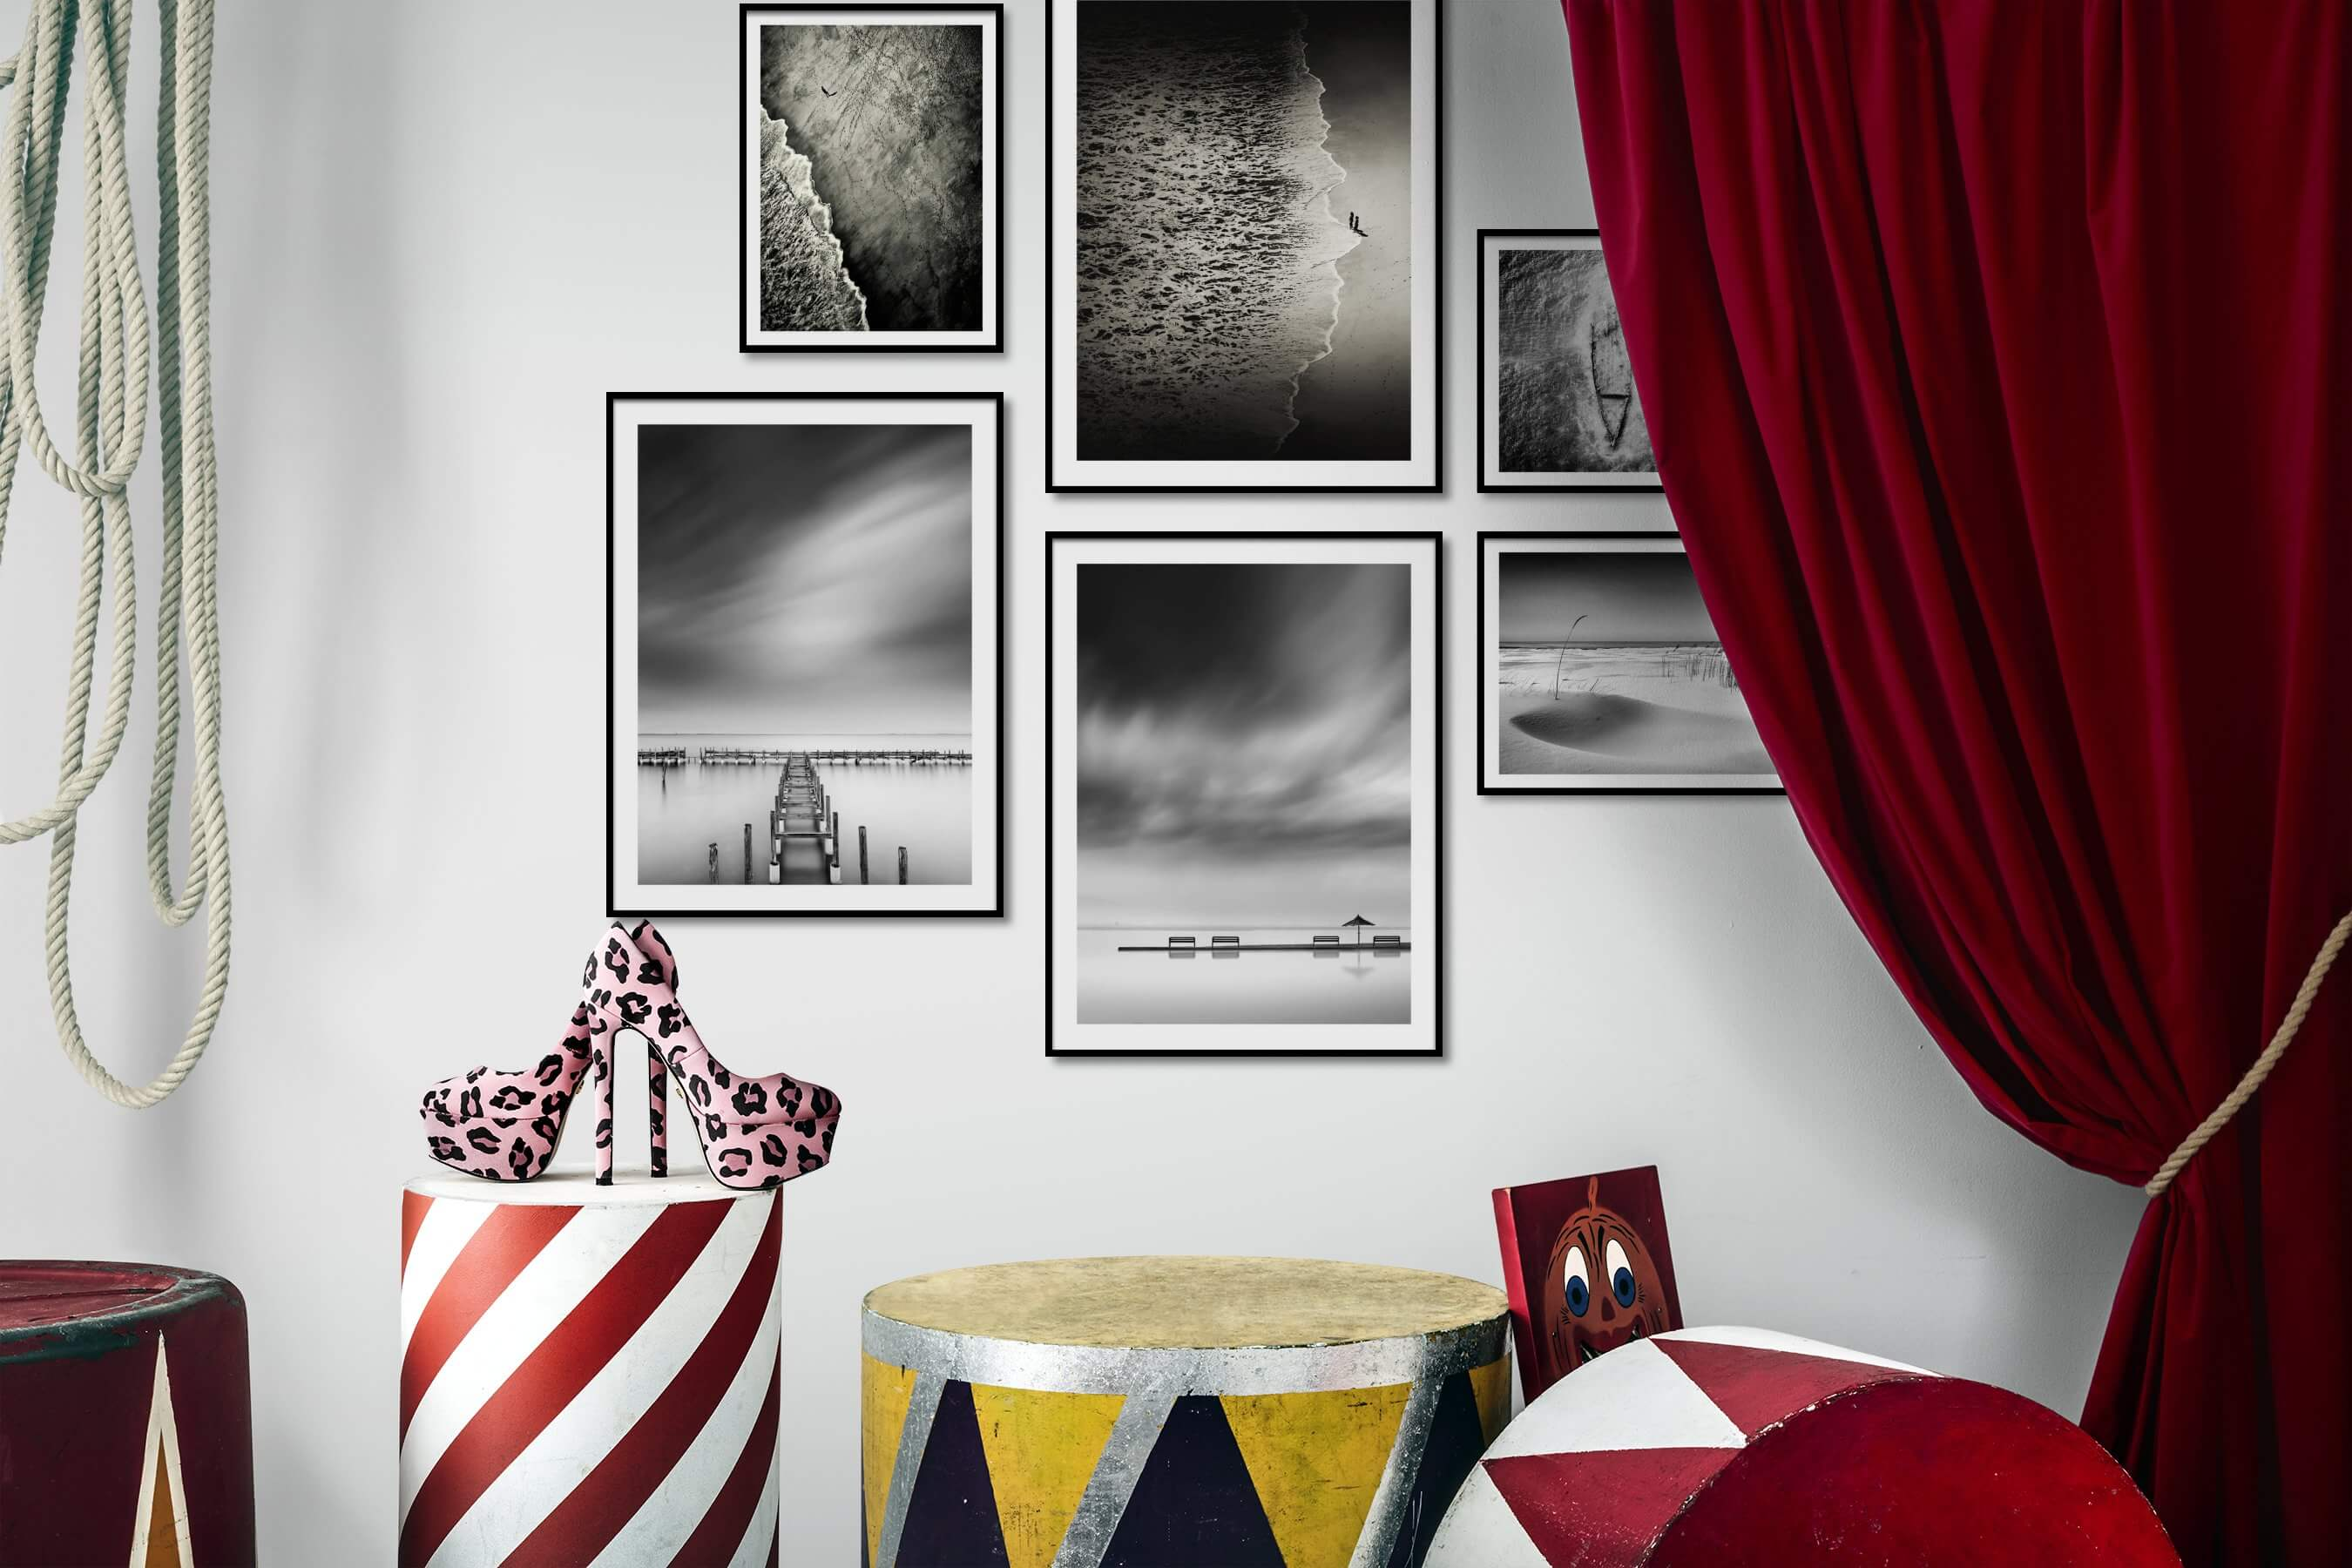 Gallery wall idea with six framed pictures arranged on a wall depicting Black & White, For the Moderate, Beach & Water, and Mindfulness